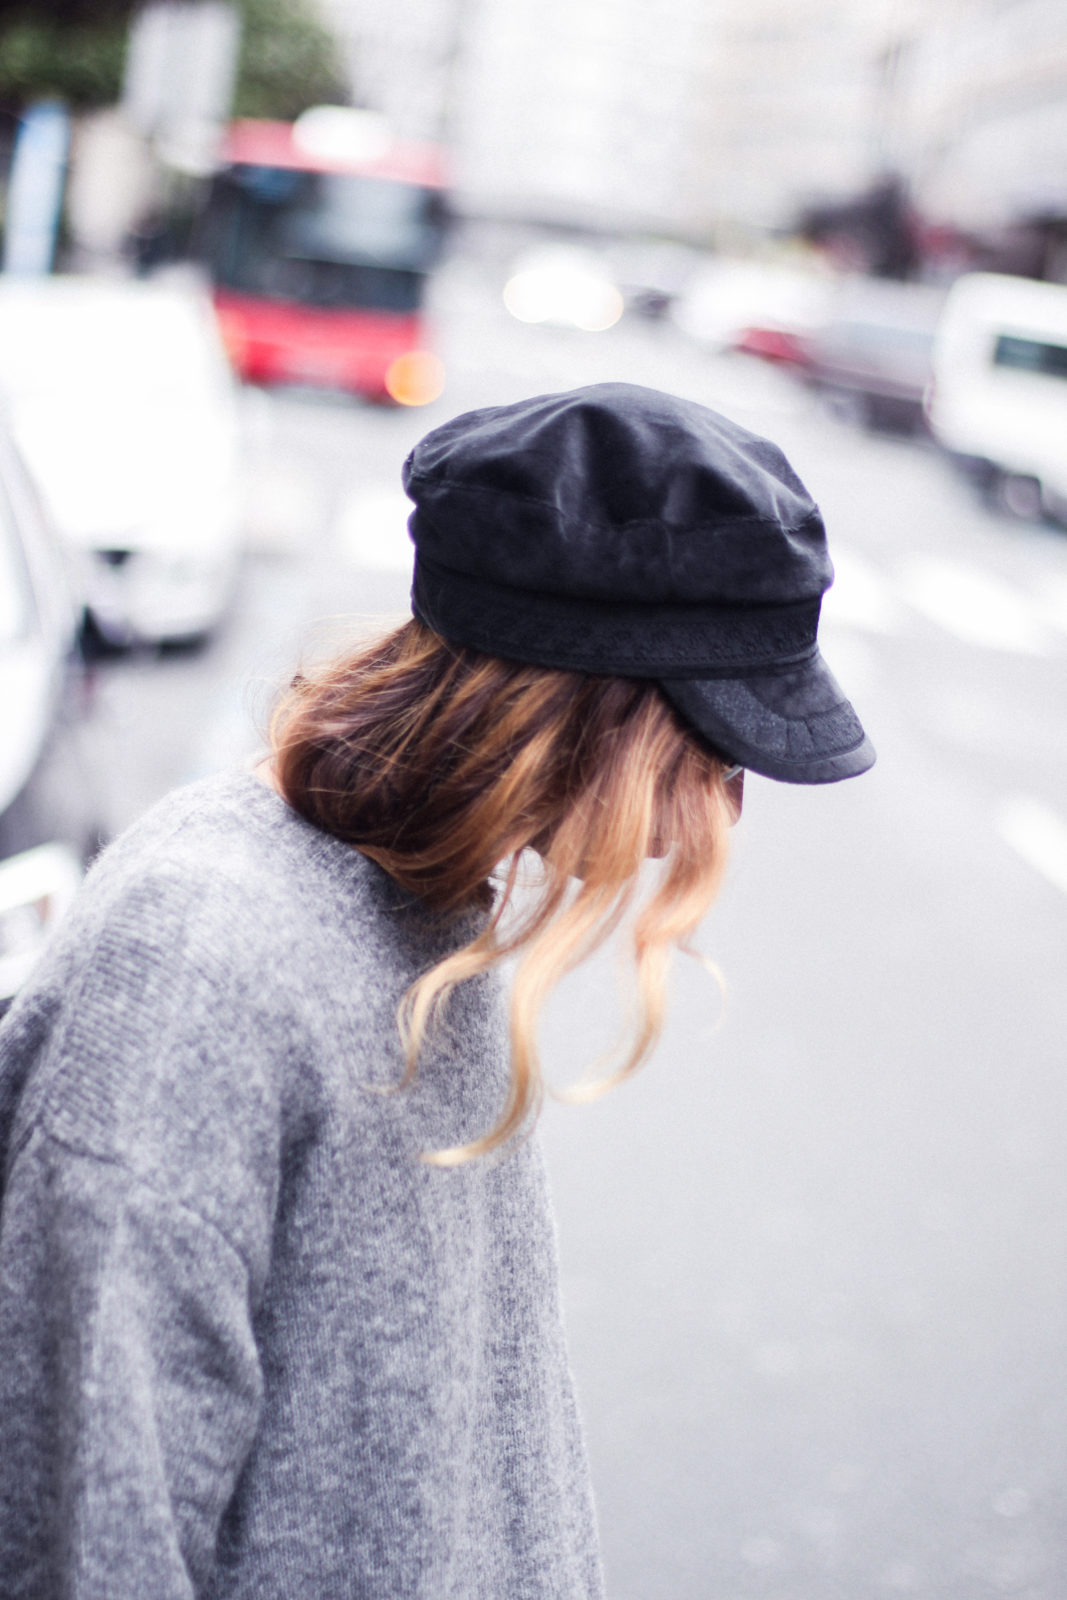 baker_boy_hat_flared_pants_vans_oversize_knit_fall_2016_trends_street_style_outfits_donkeycool-7